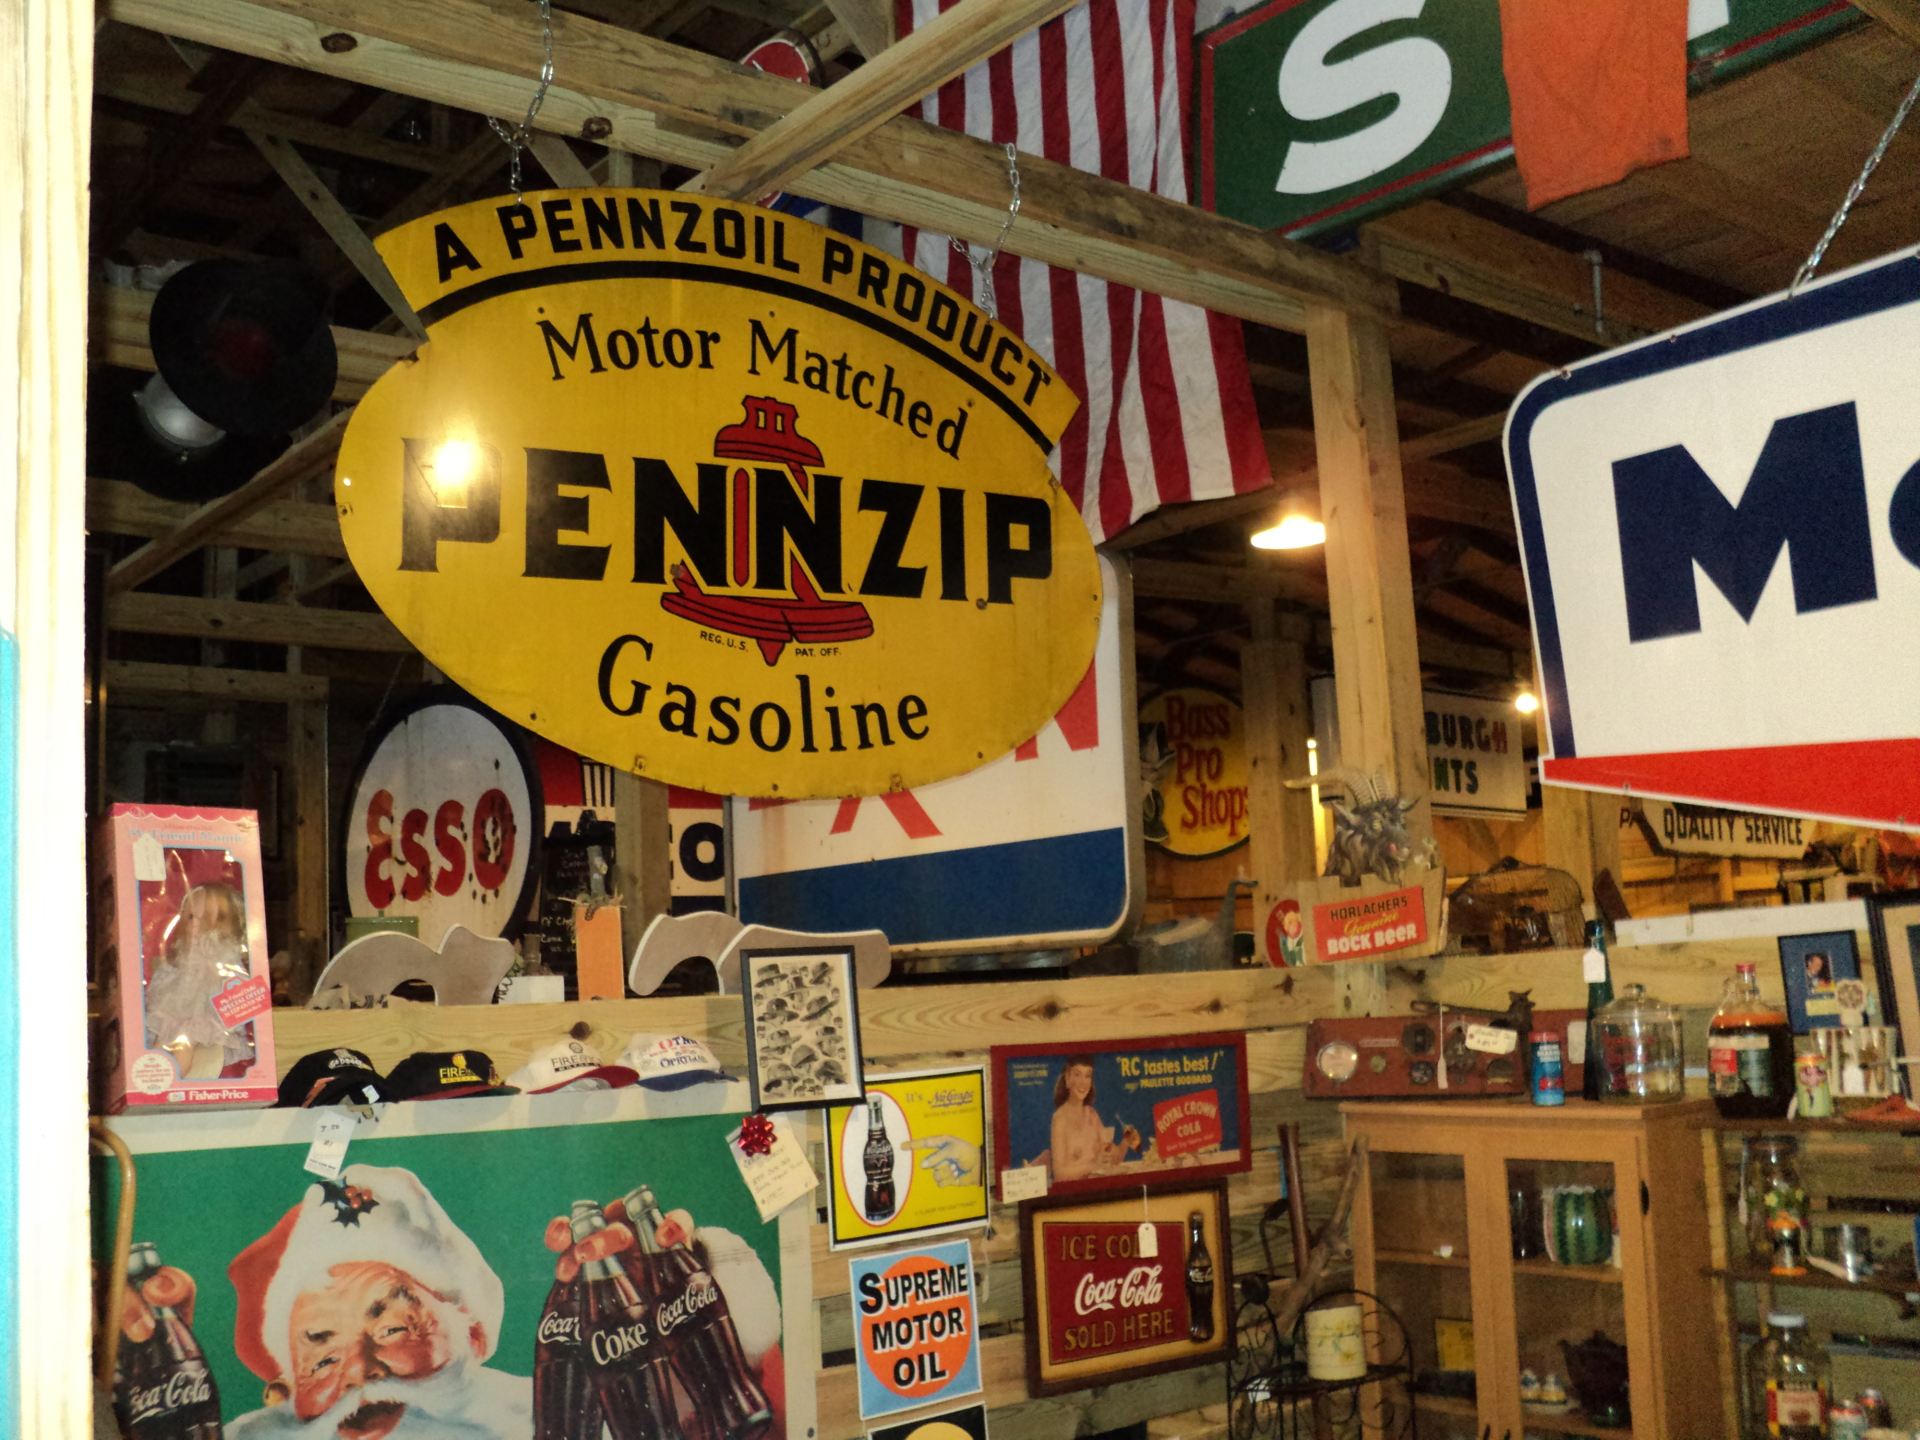 6' Pennzip Sign